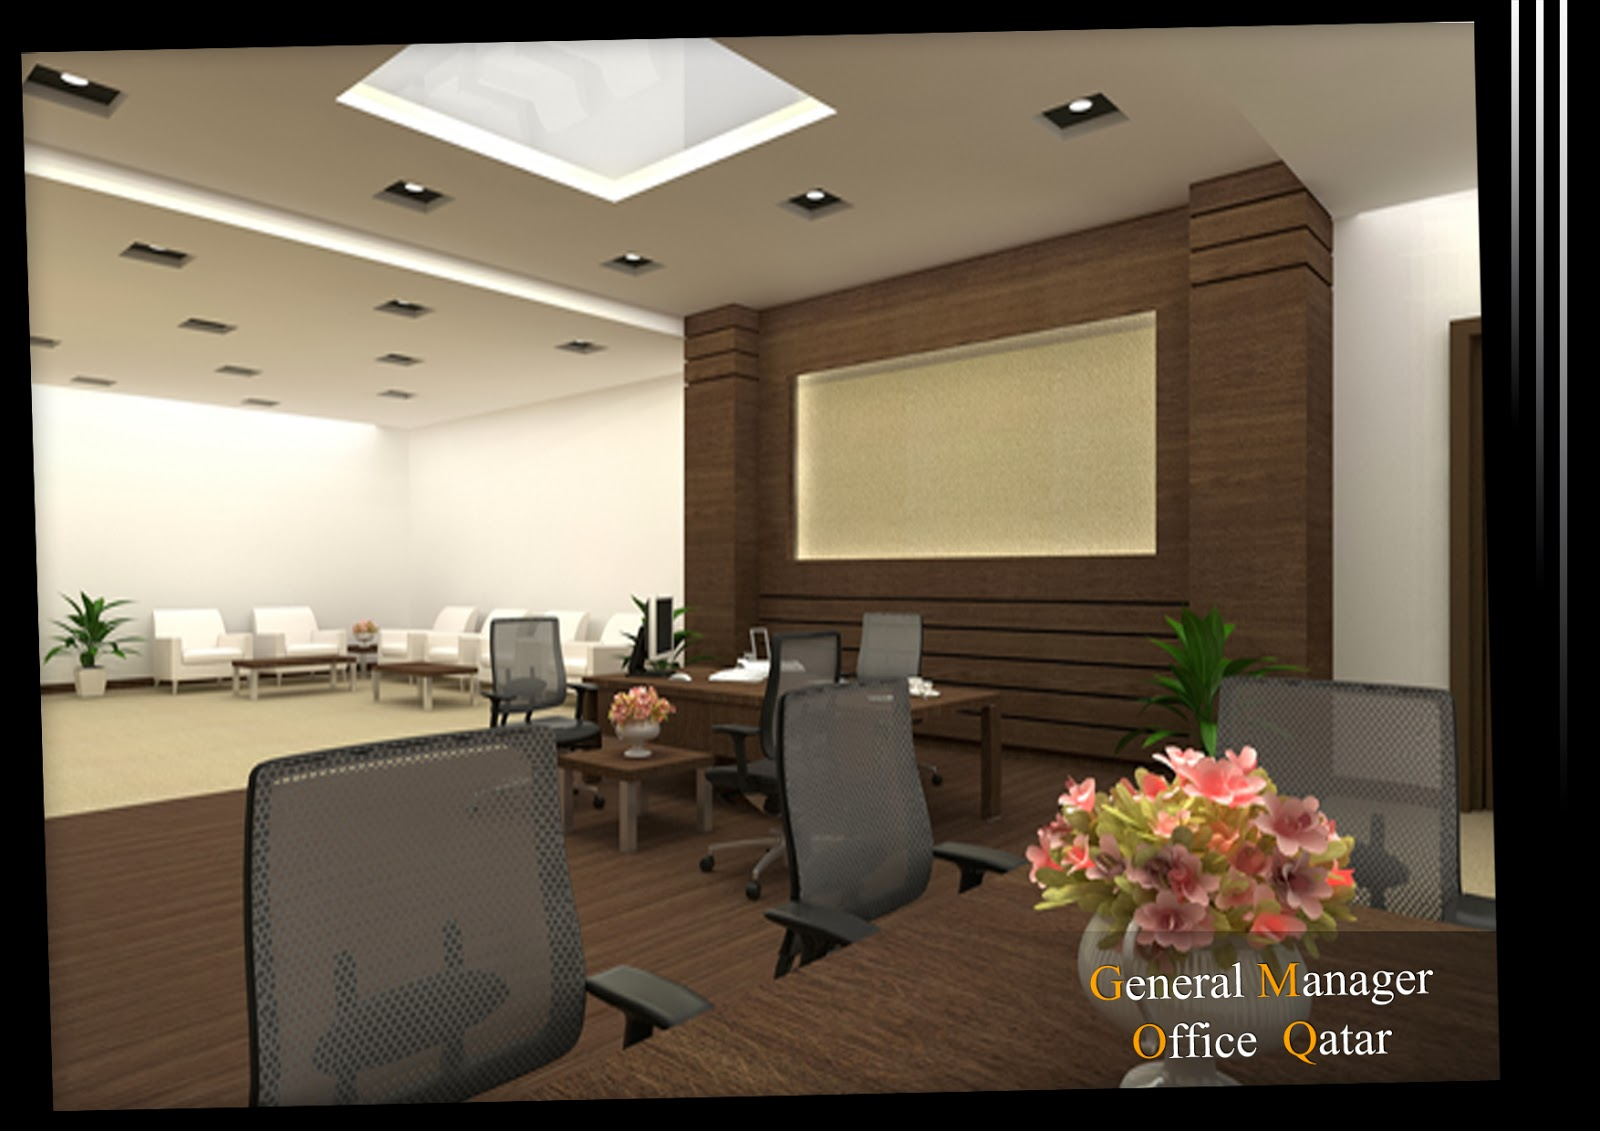 Arch Michael Boules Interior Design For General Manager Office Qatar